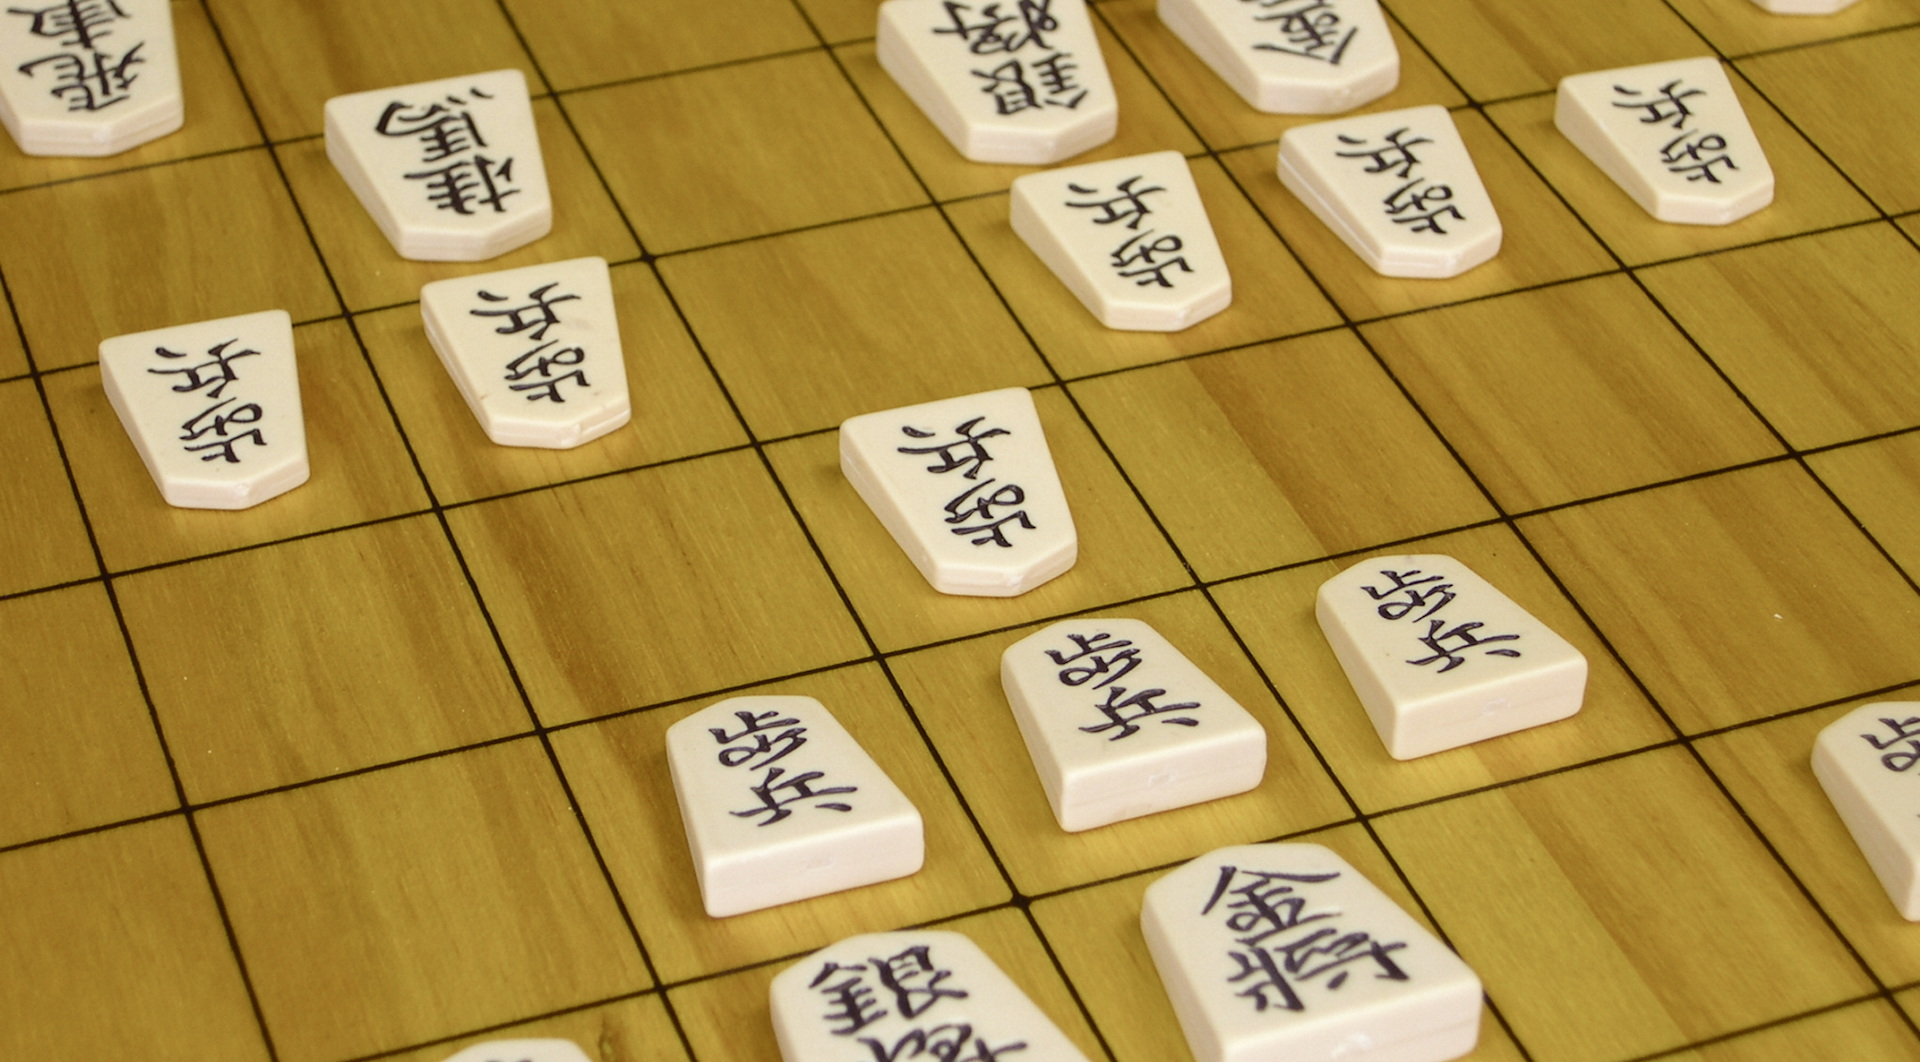 JAPANESE BOARD GAMES - Weds 20th